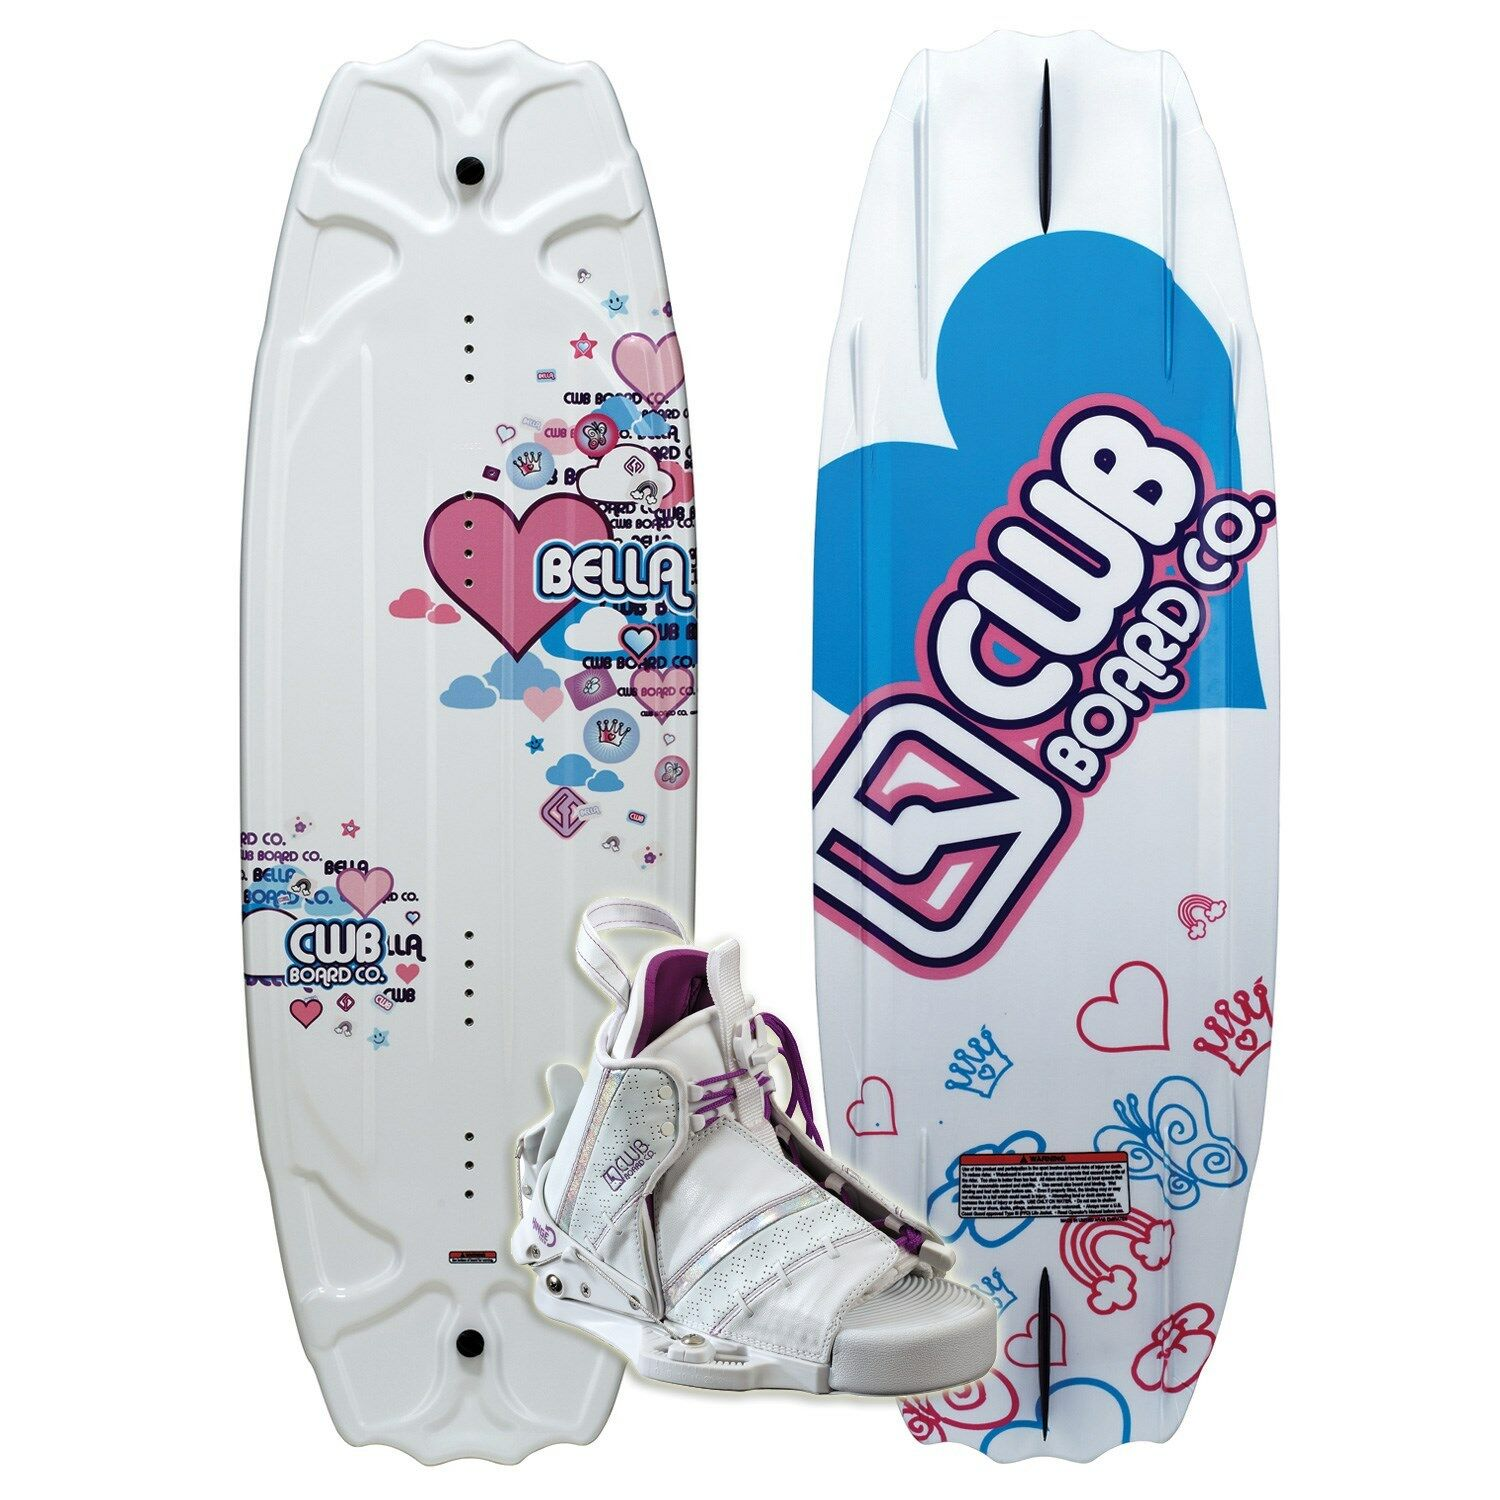 Connelly CWB BELLA Wakeboard 124 with Bliss Bindings - Brand New